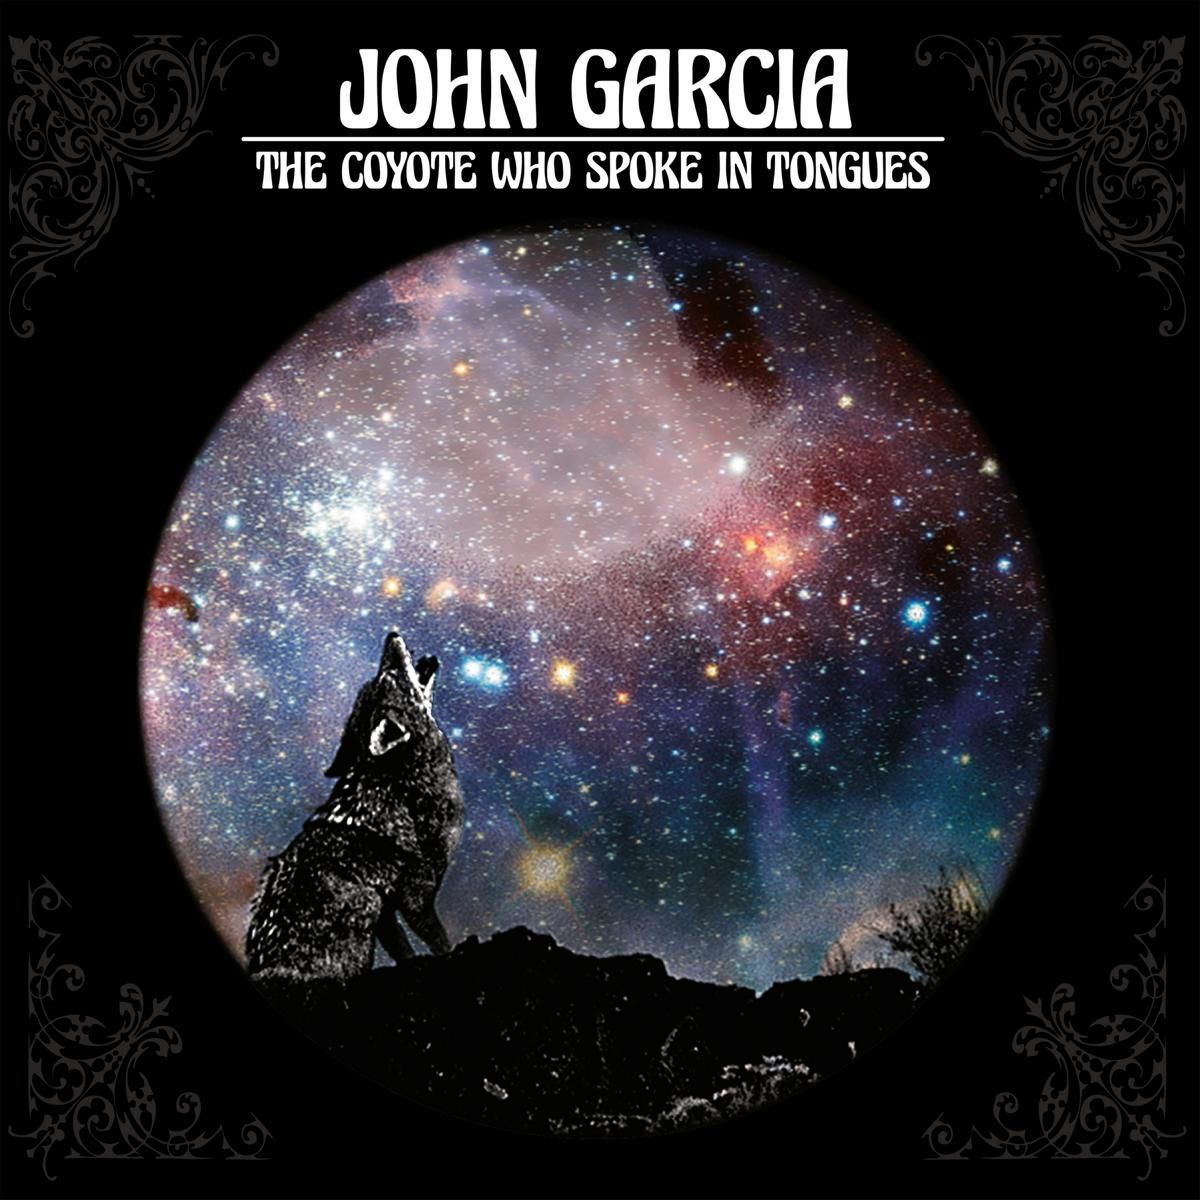 JOHN GARCIA reveals first details of the upcoming album